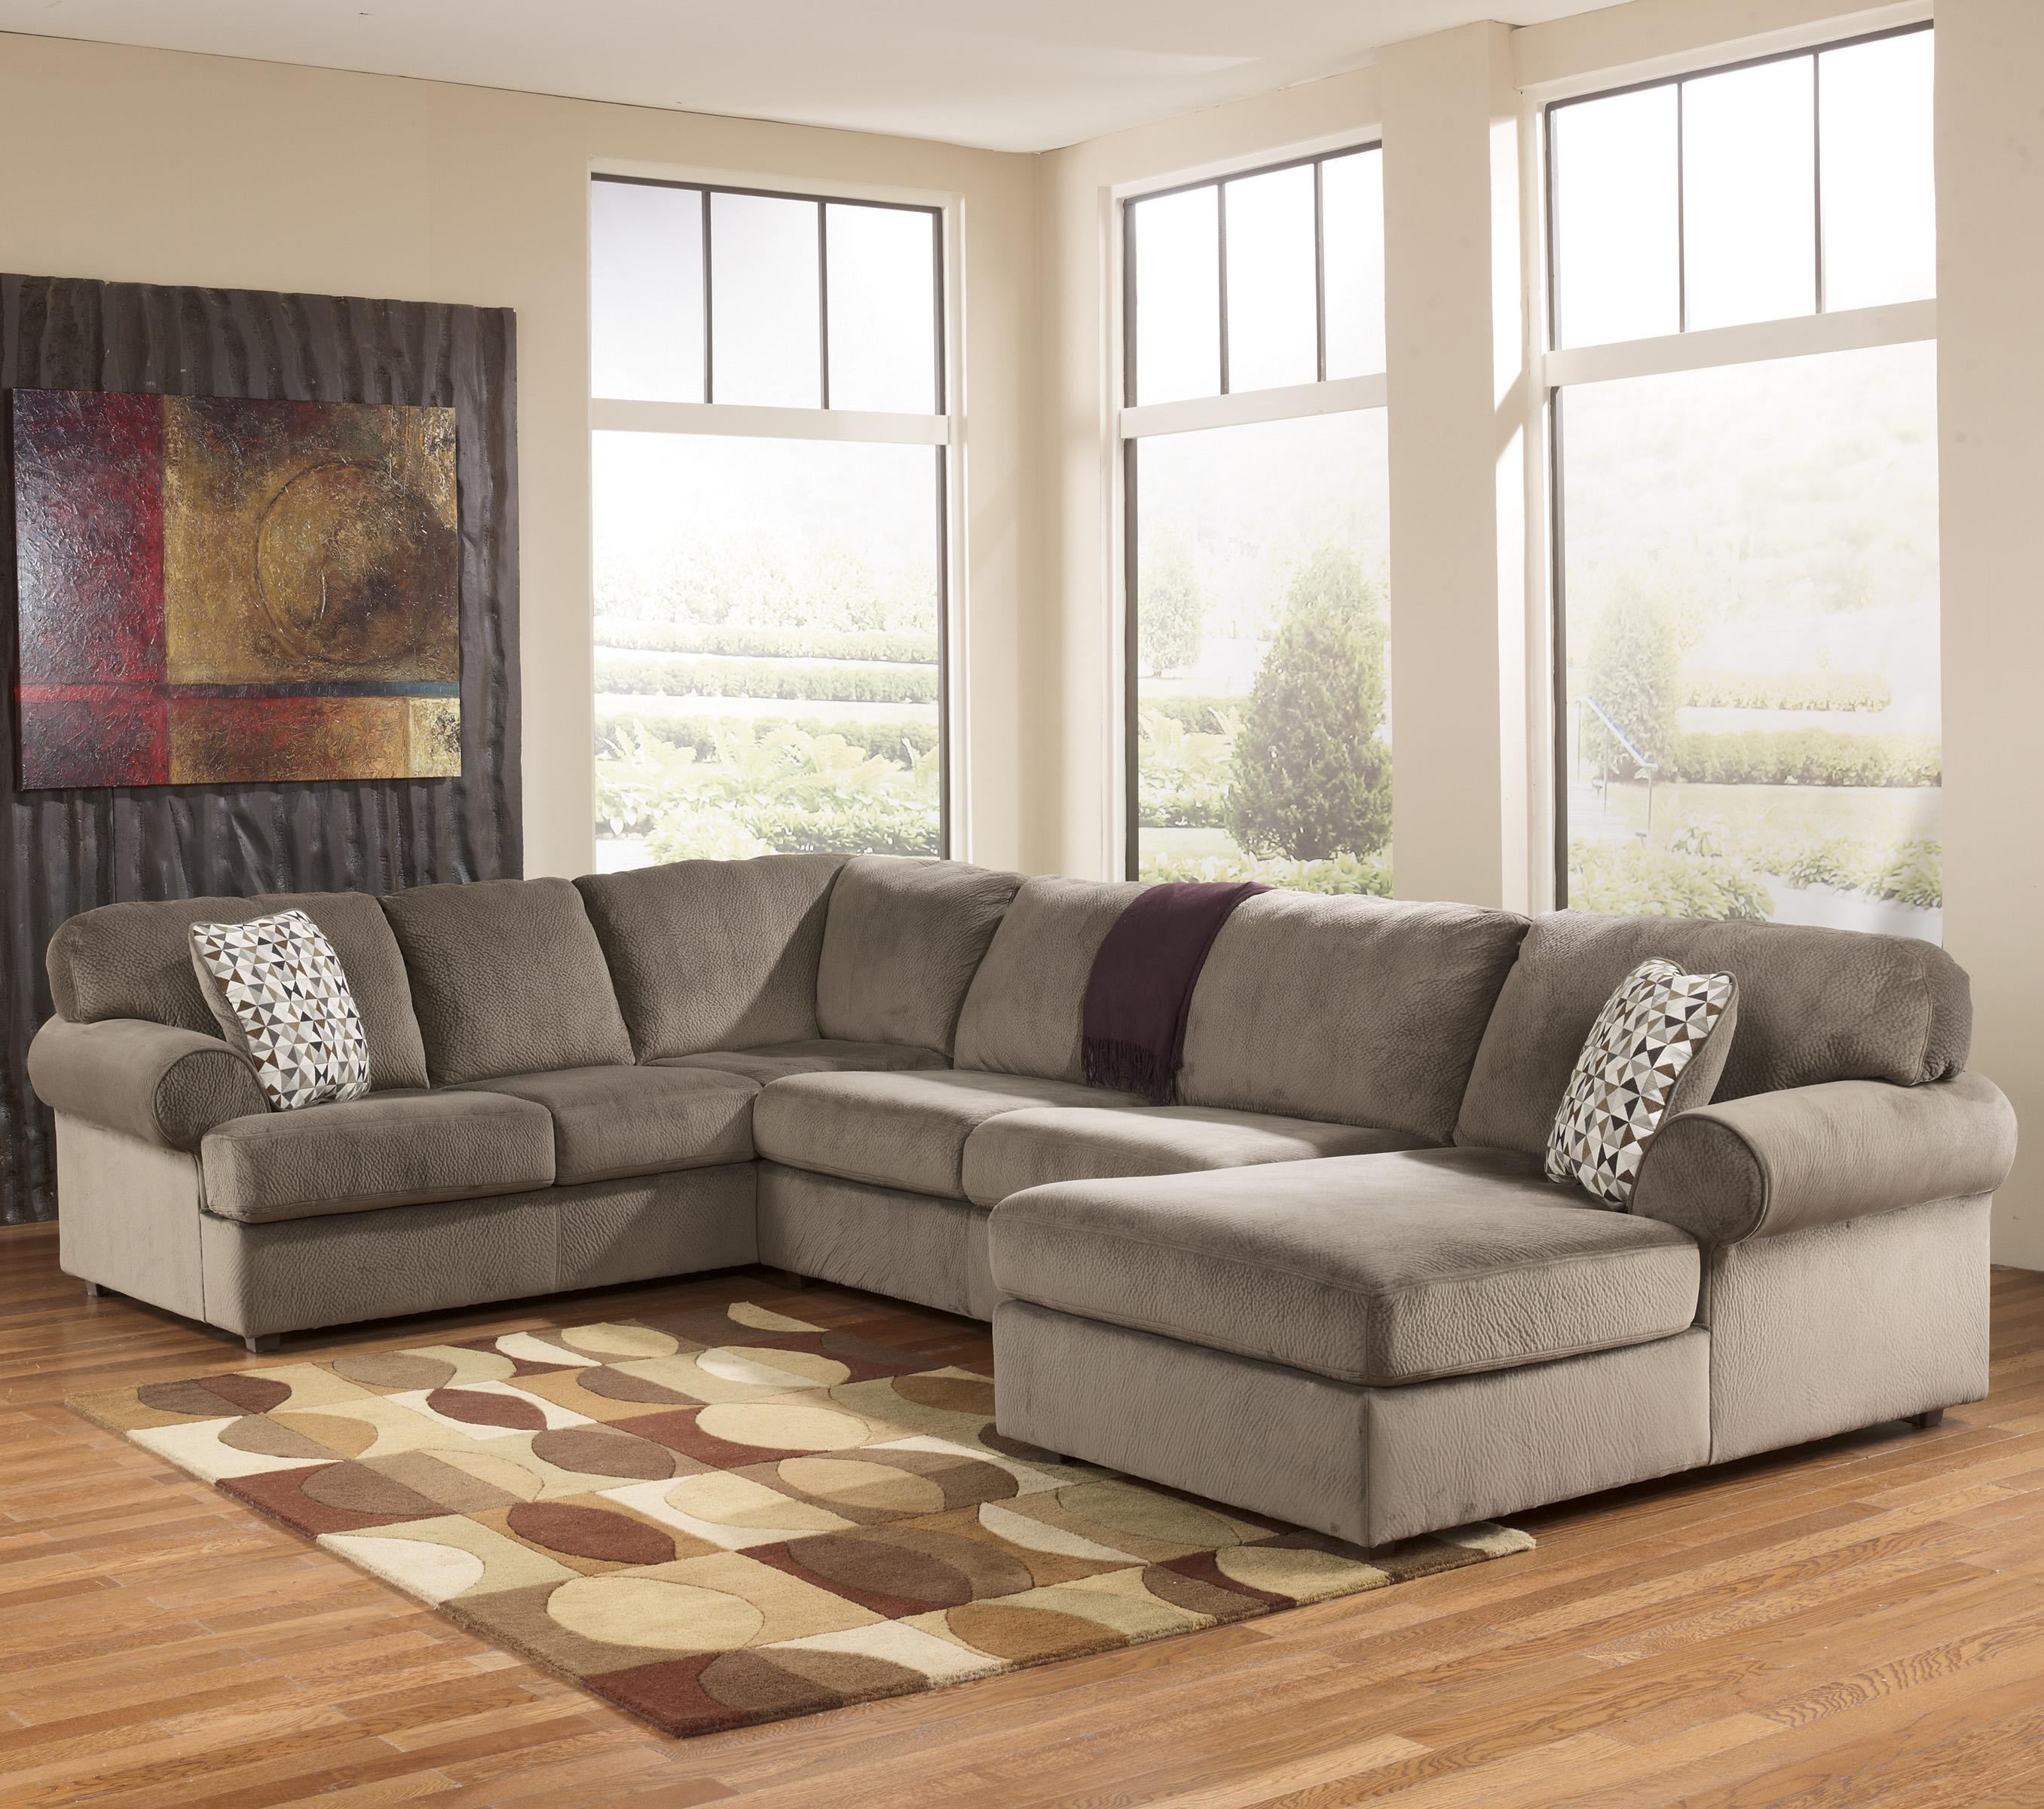 Jessa Place Dune Sectional Sofa With Right Chaise